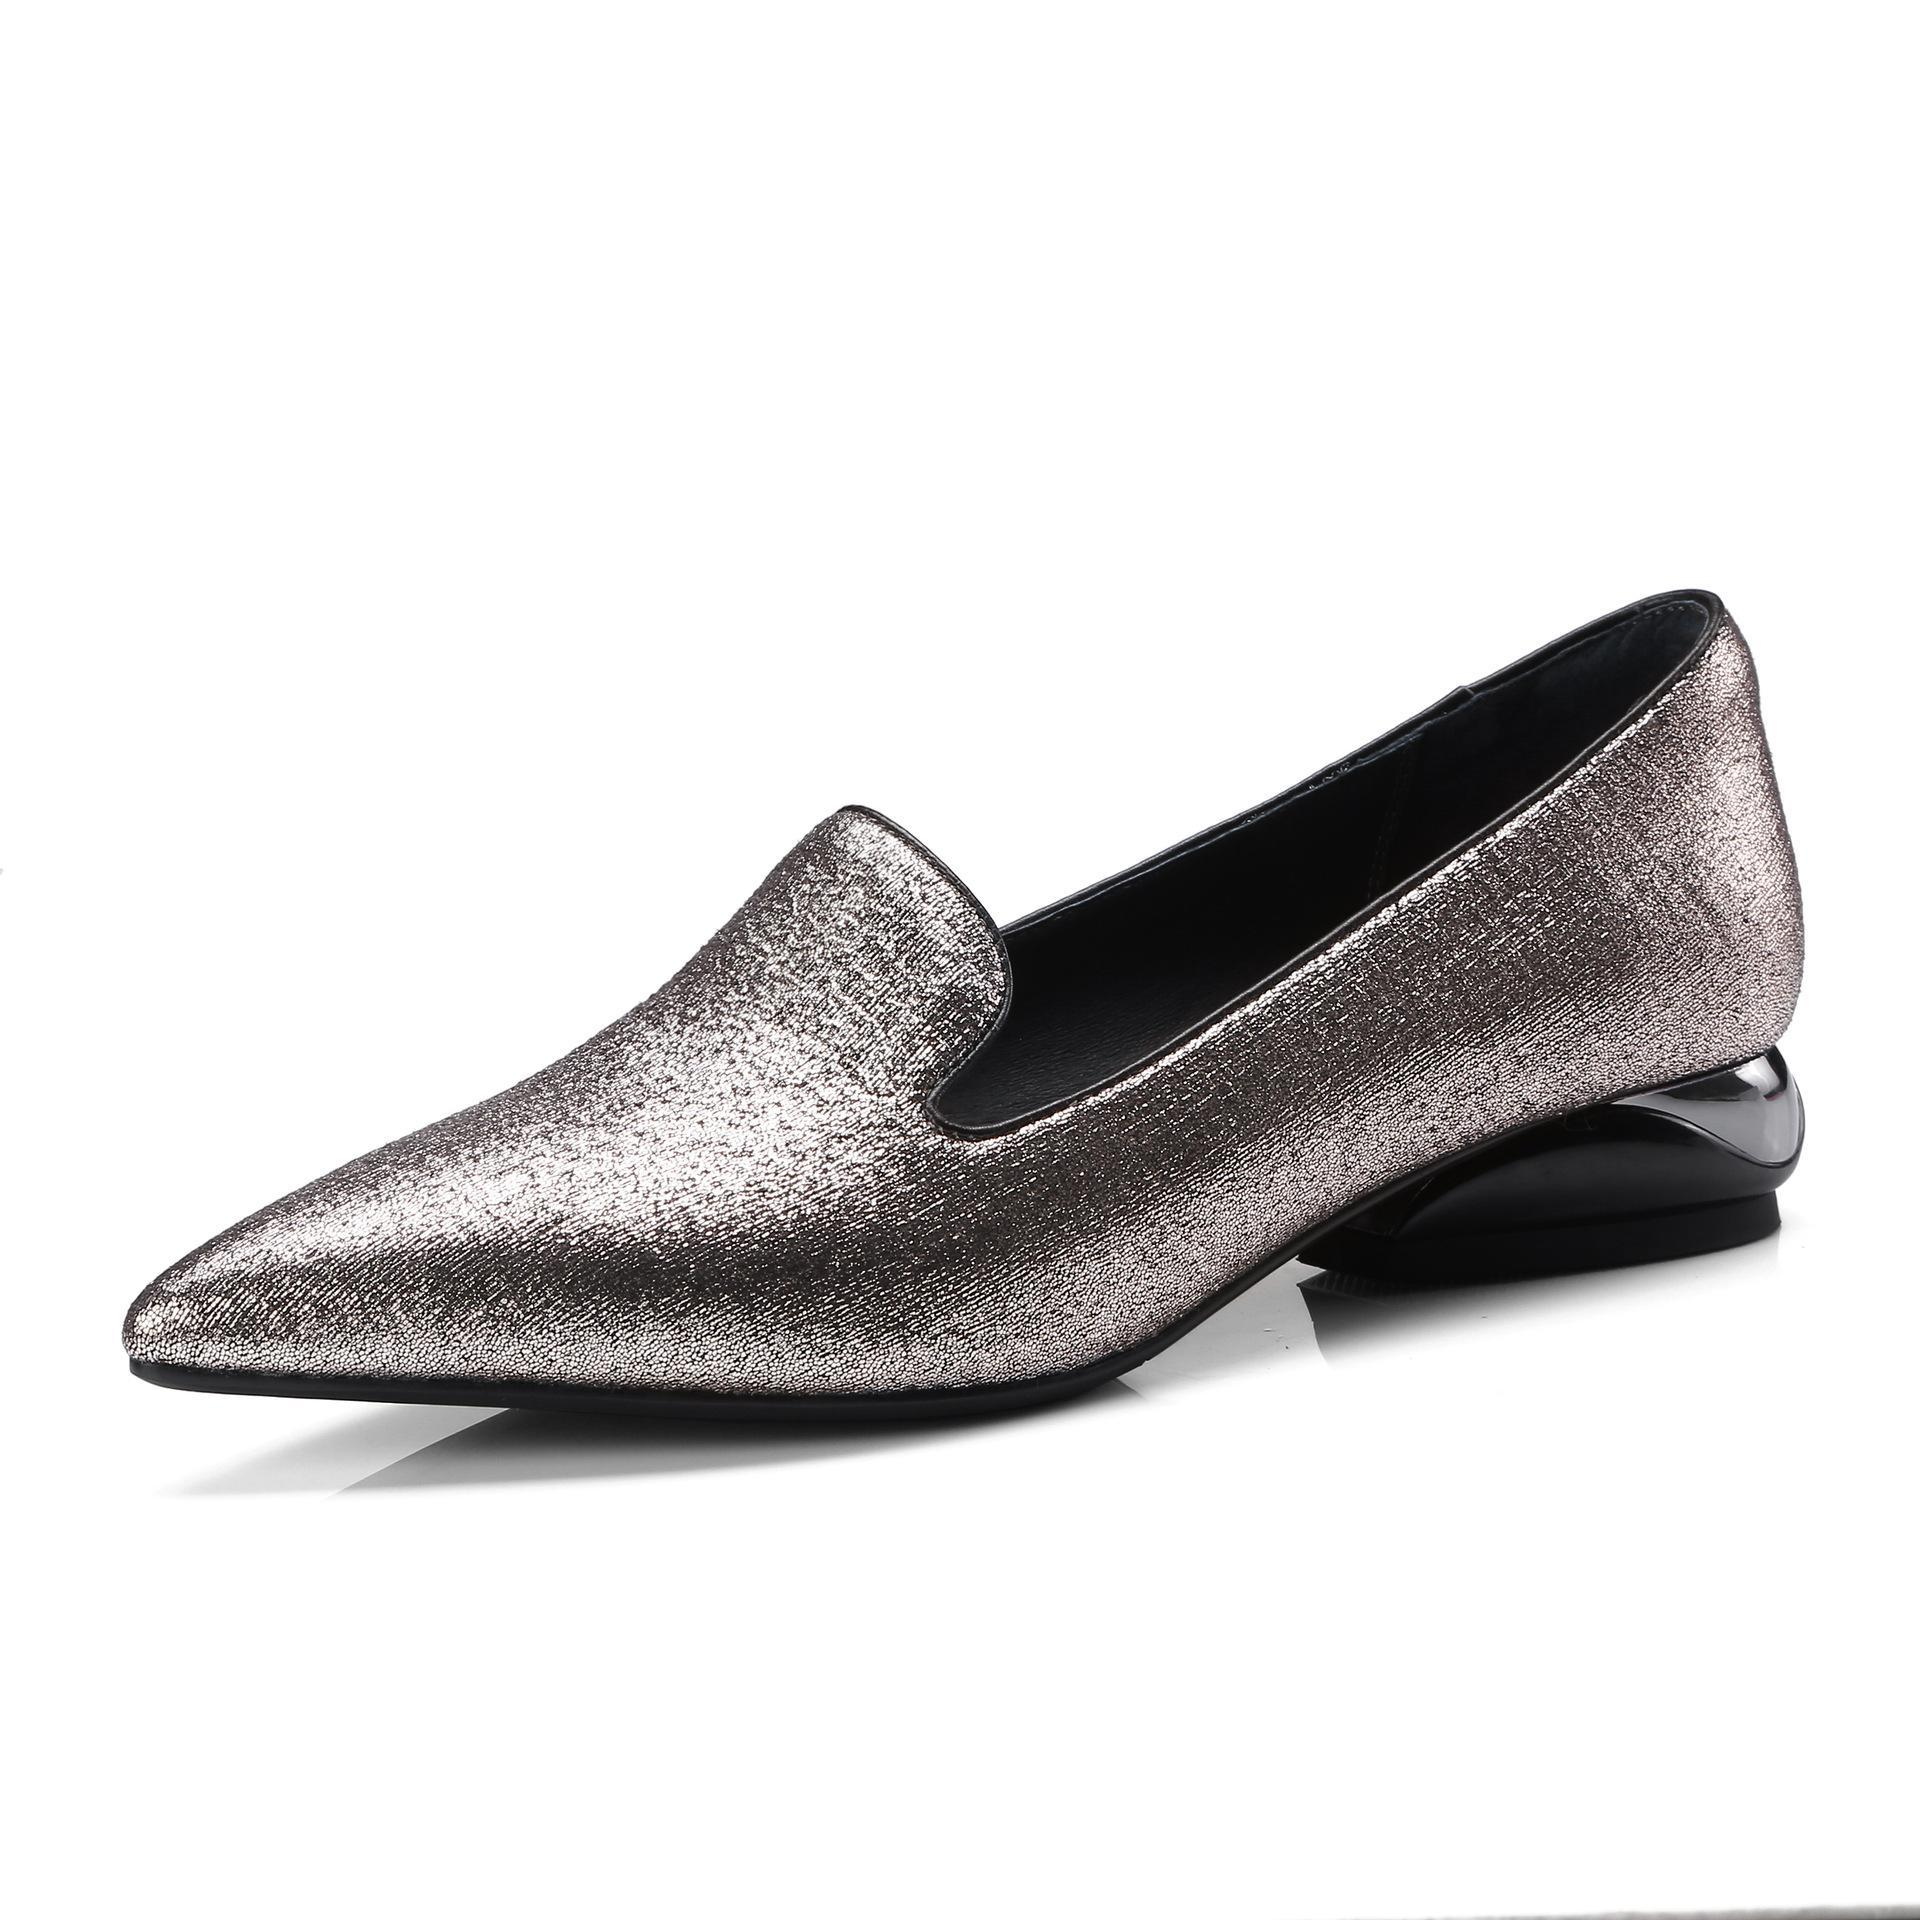 Plus Size 34-42 Spring Women Pointed Toe Genuine Leather Boat Shoes Low Heels Pumps Woman Basic Square Heel Shoes Loafers anmairon women pumps 2018 low heel spring court shoes woman pointed toe pumps med heels silver gold women black giltter shoes